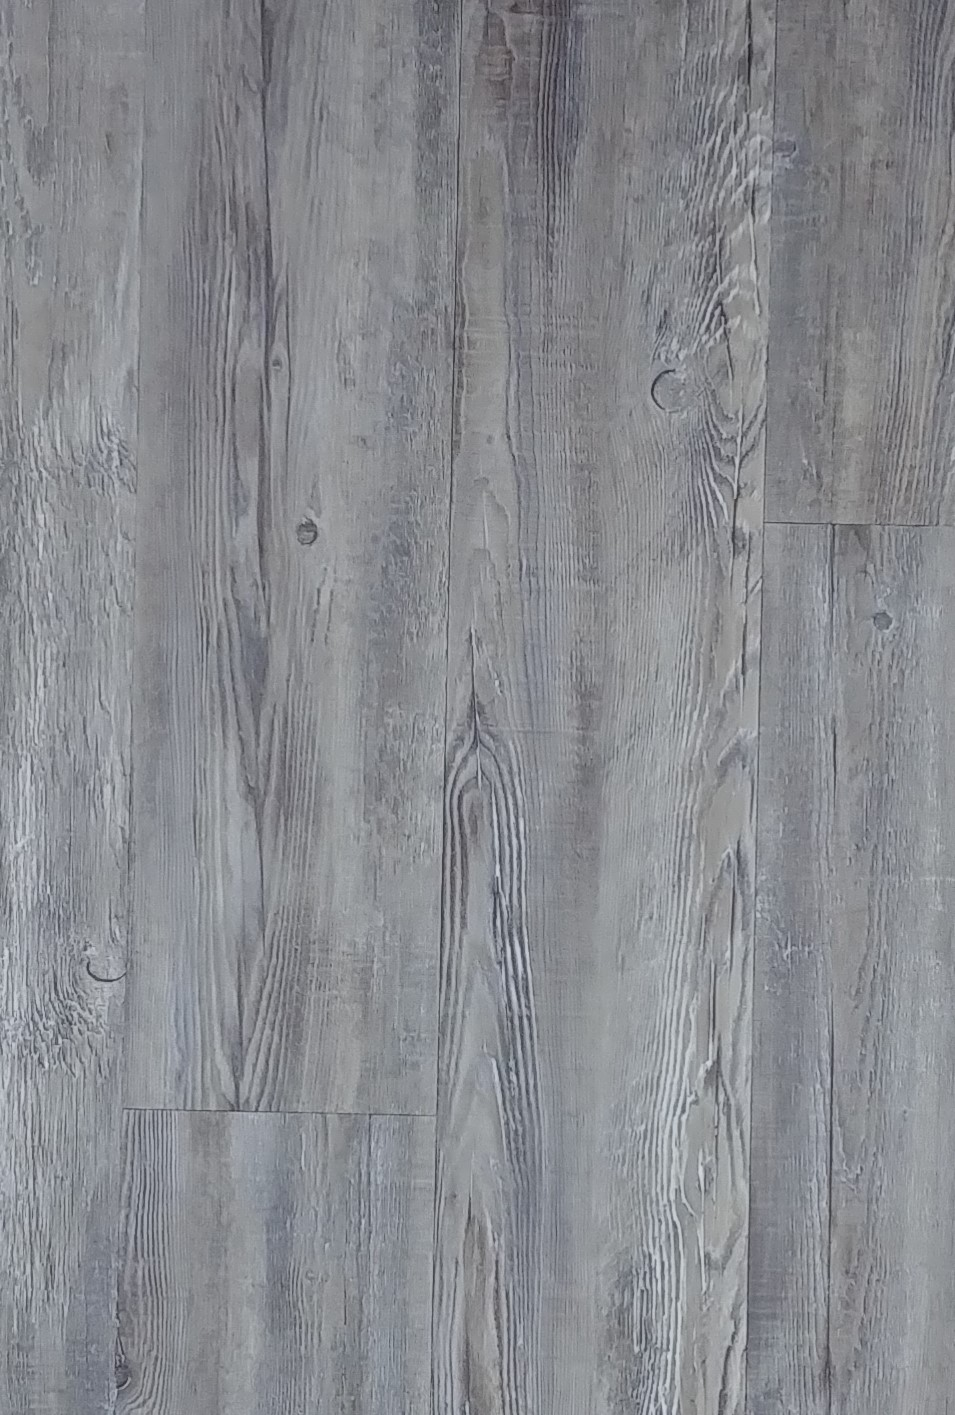 Prime Plank, #400 Weathered Barnboard     6mil